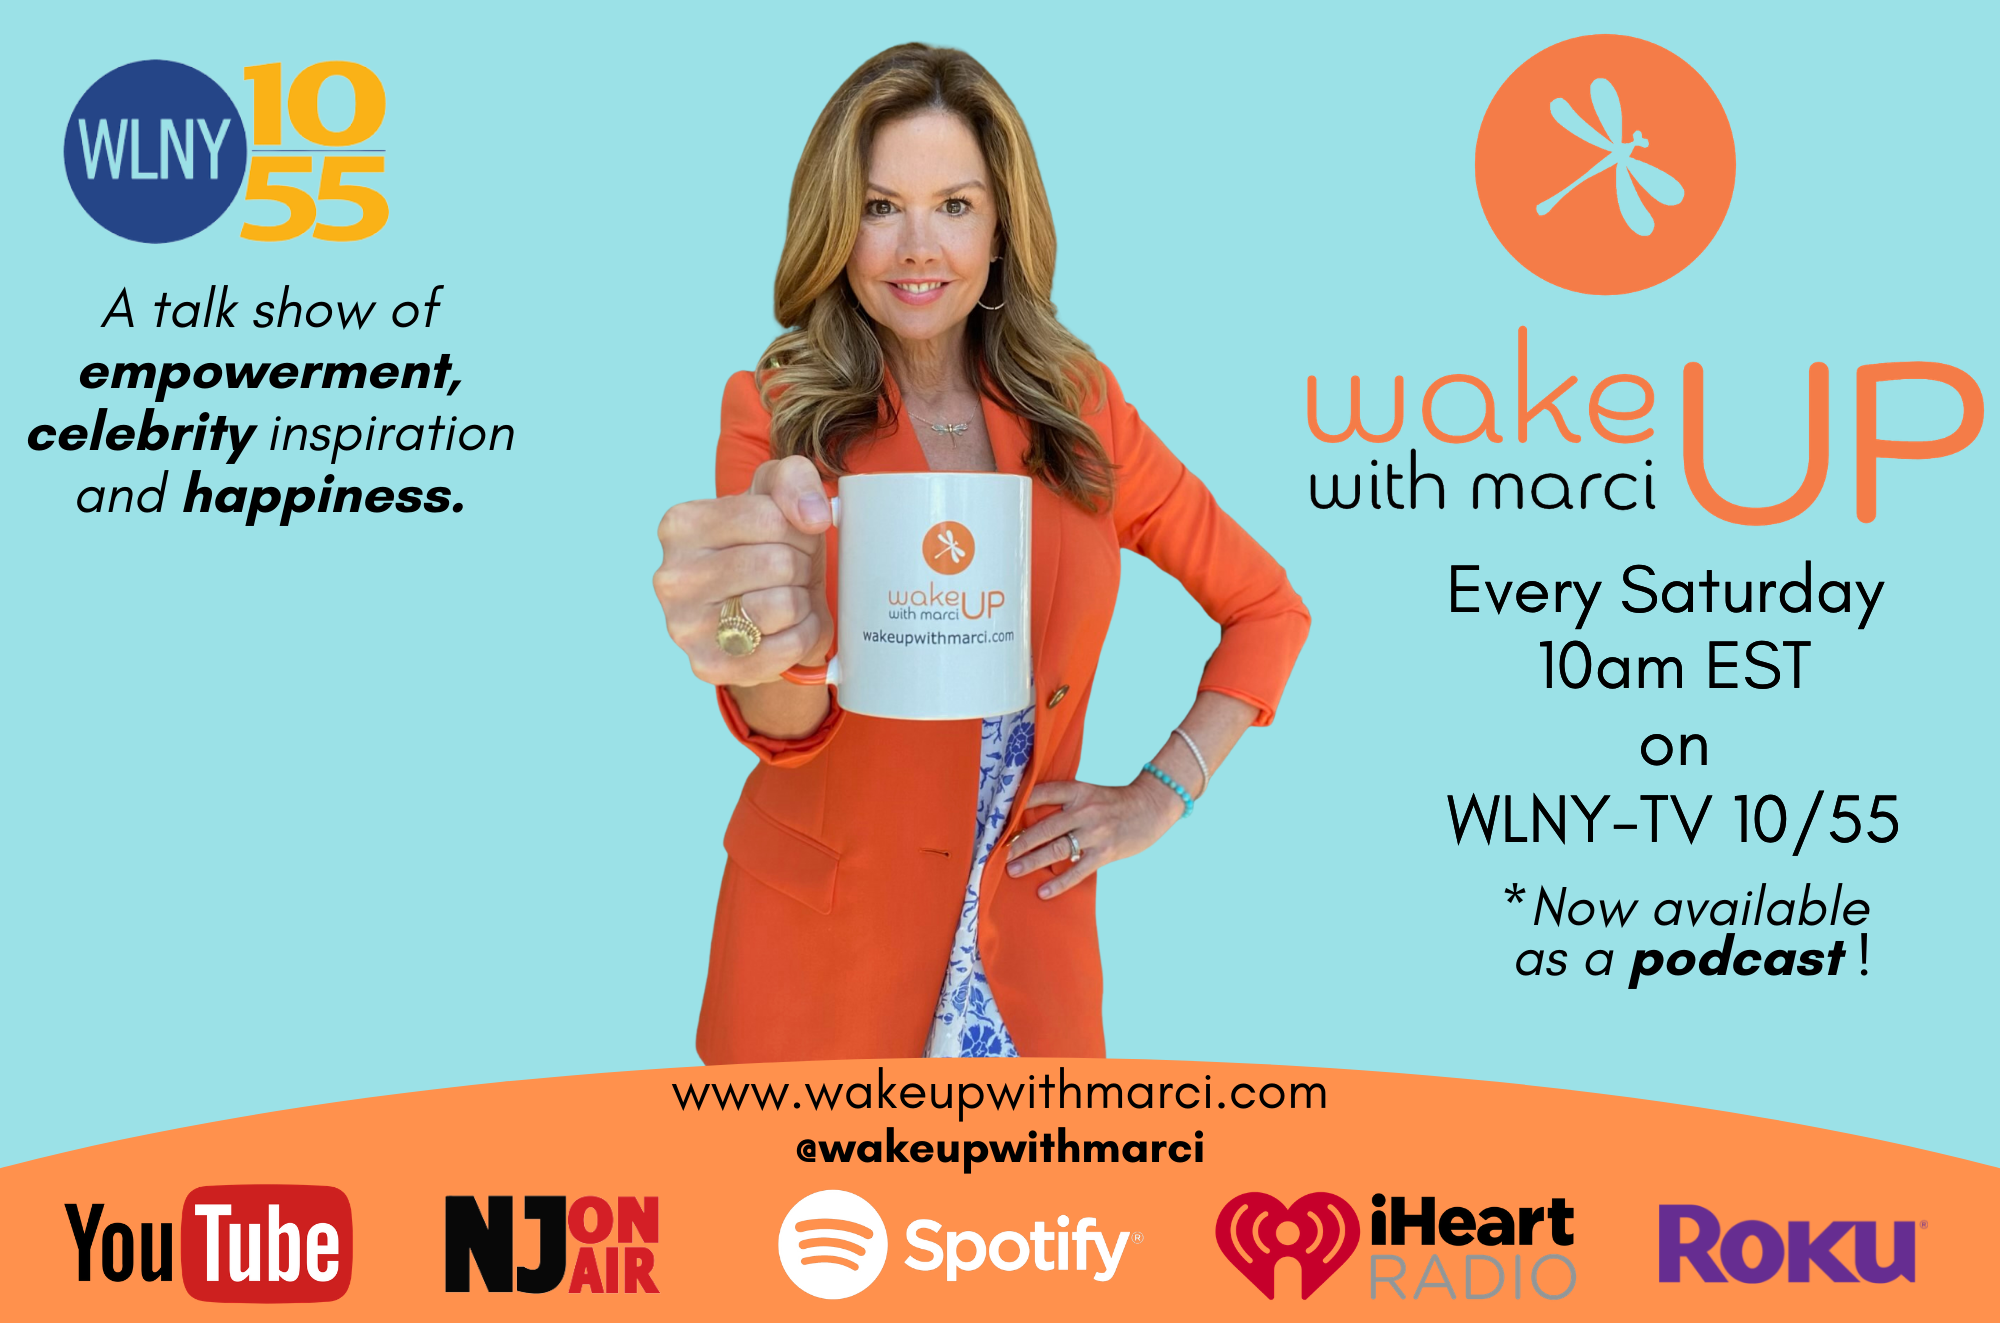 Picture of Marci Hopkins - Wake up with Marci, a talk show of empowerment, celebrity inspiration and happiness. Final Revision of wake up ad for Bella.